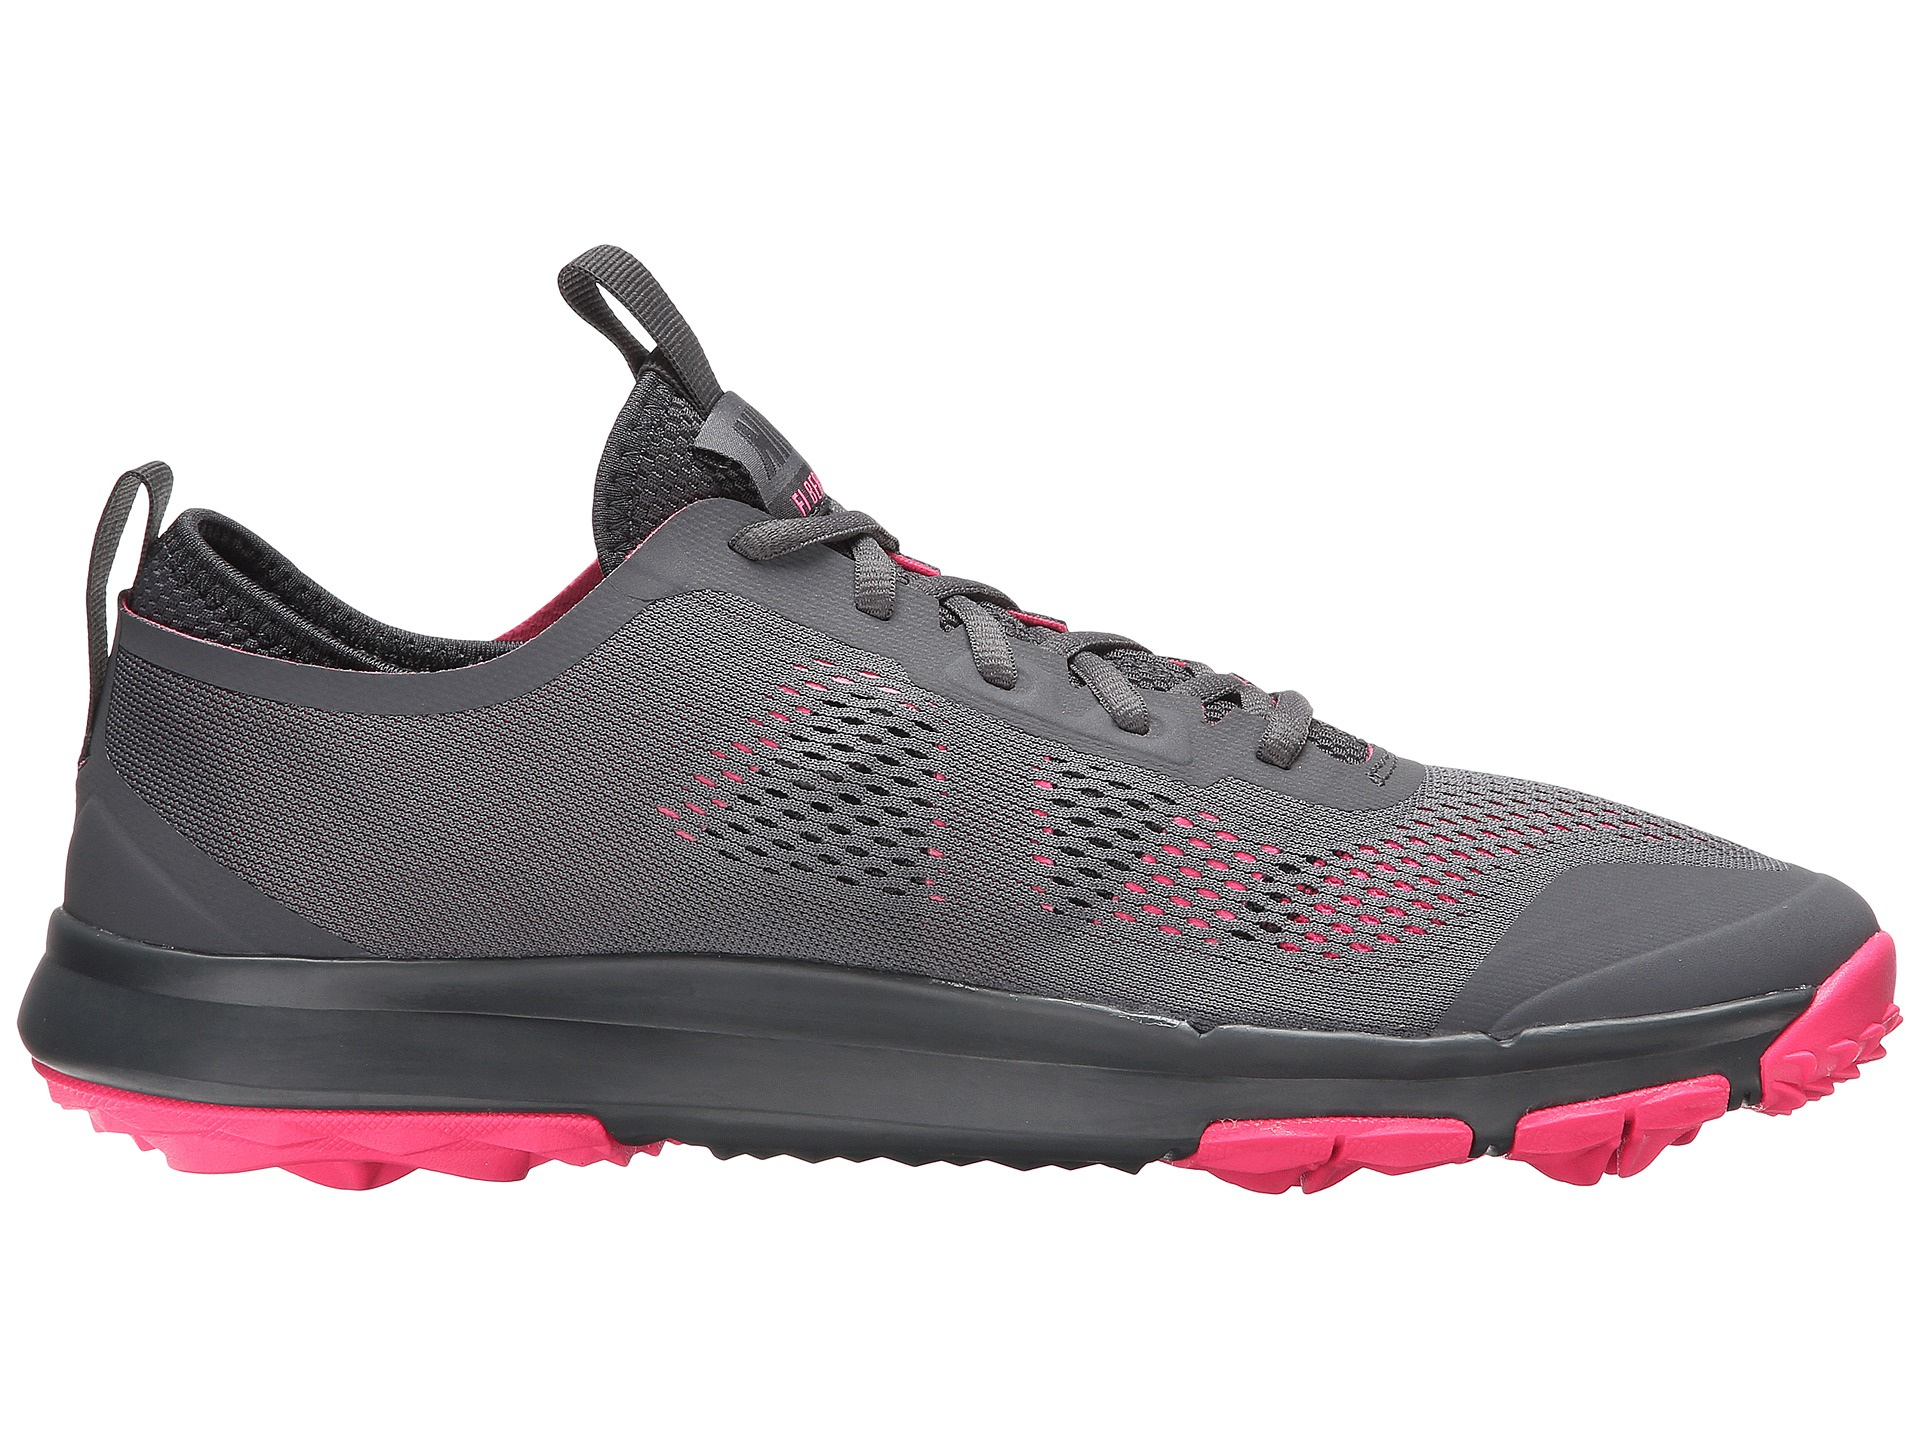 Nike F Bermuda Golf Shoes